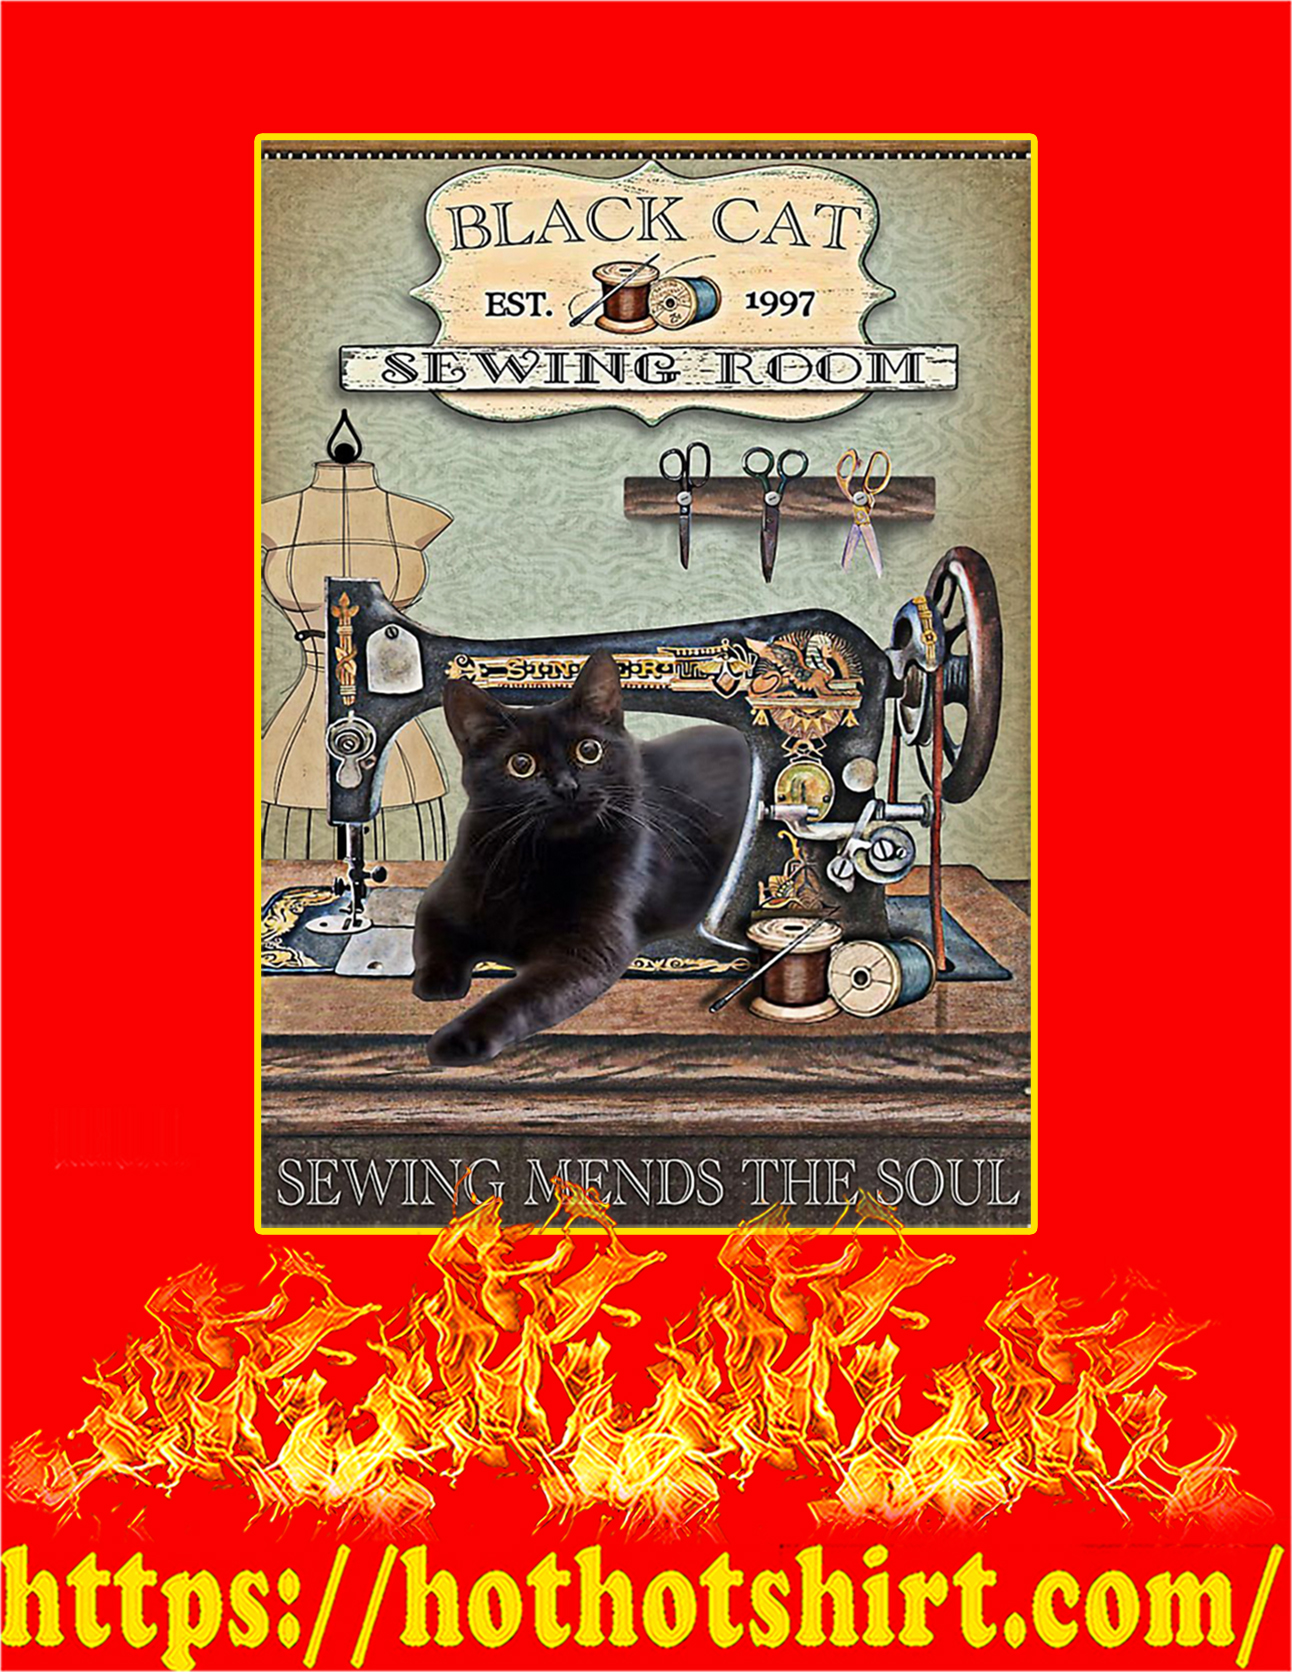 Black Cat Sewing Room Sewing Mends The Soul Poster - A2